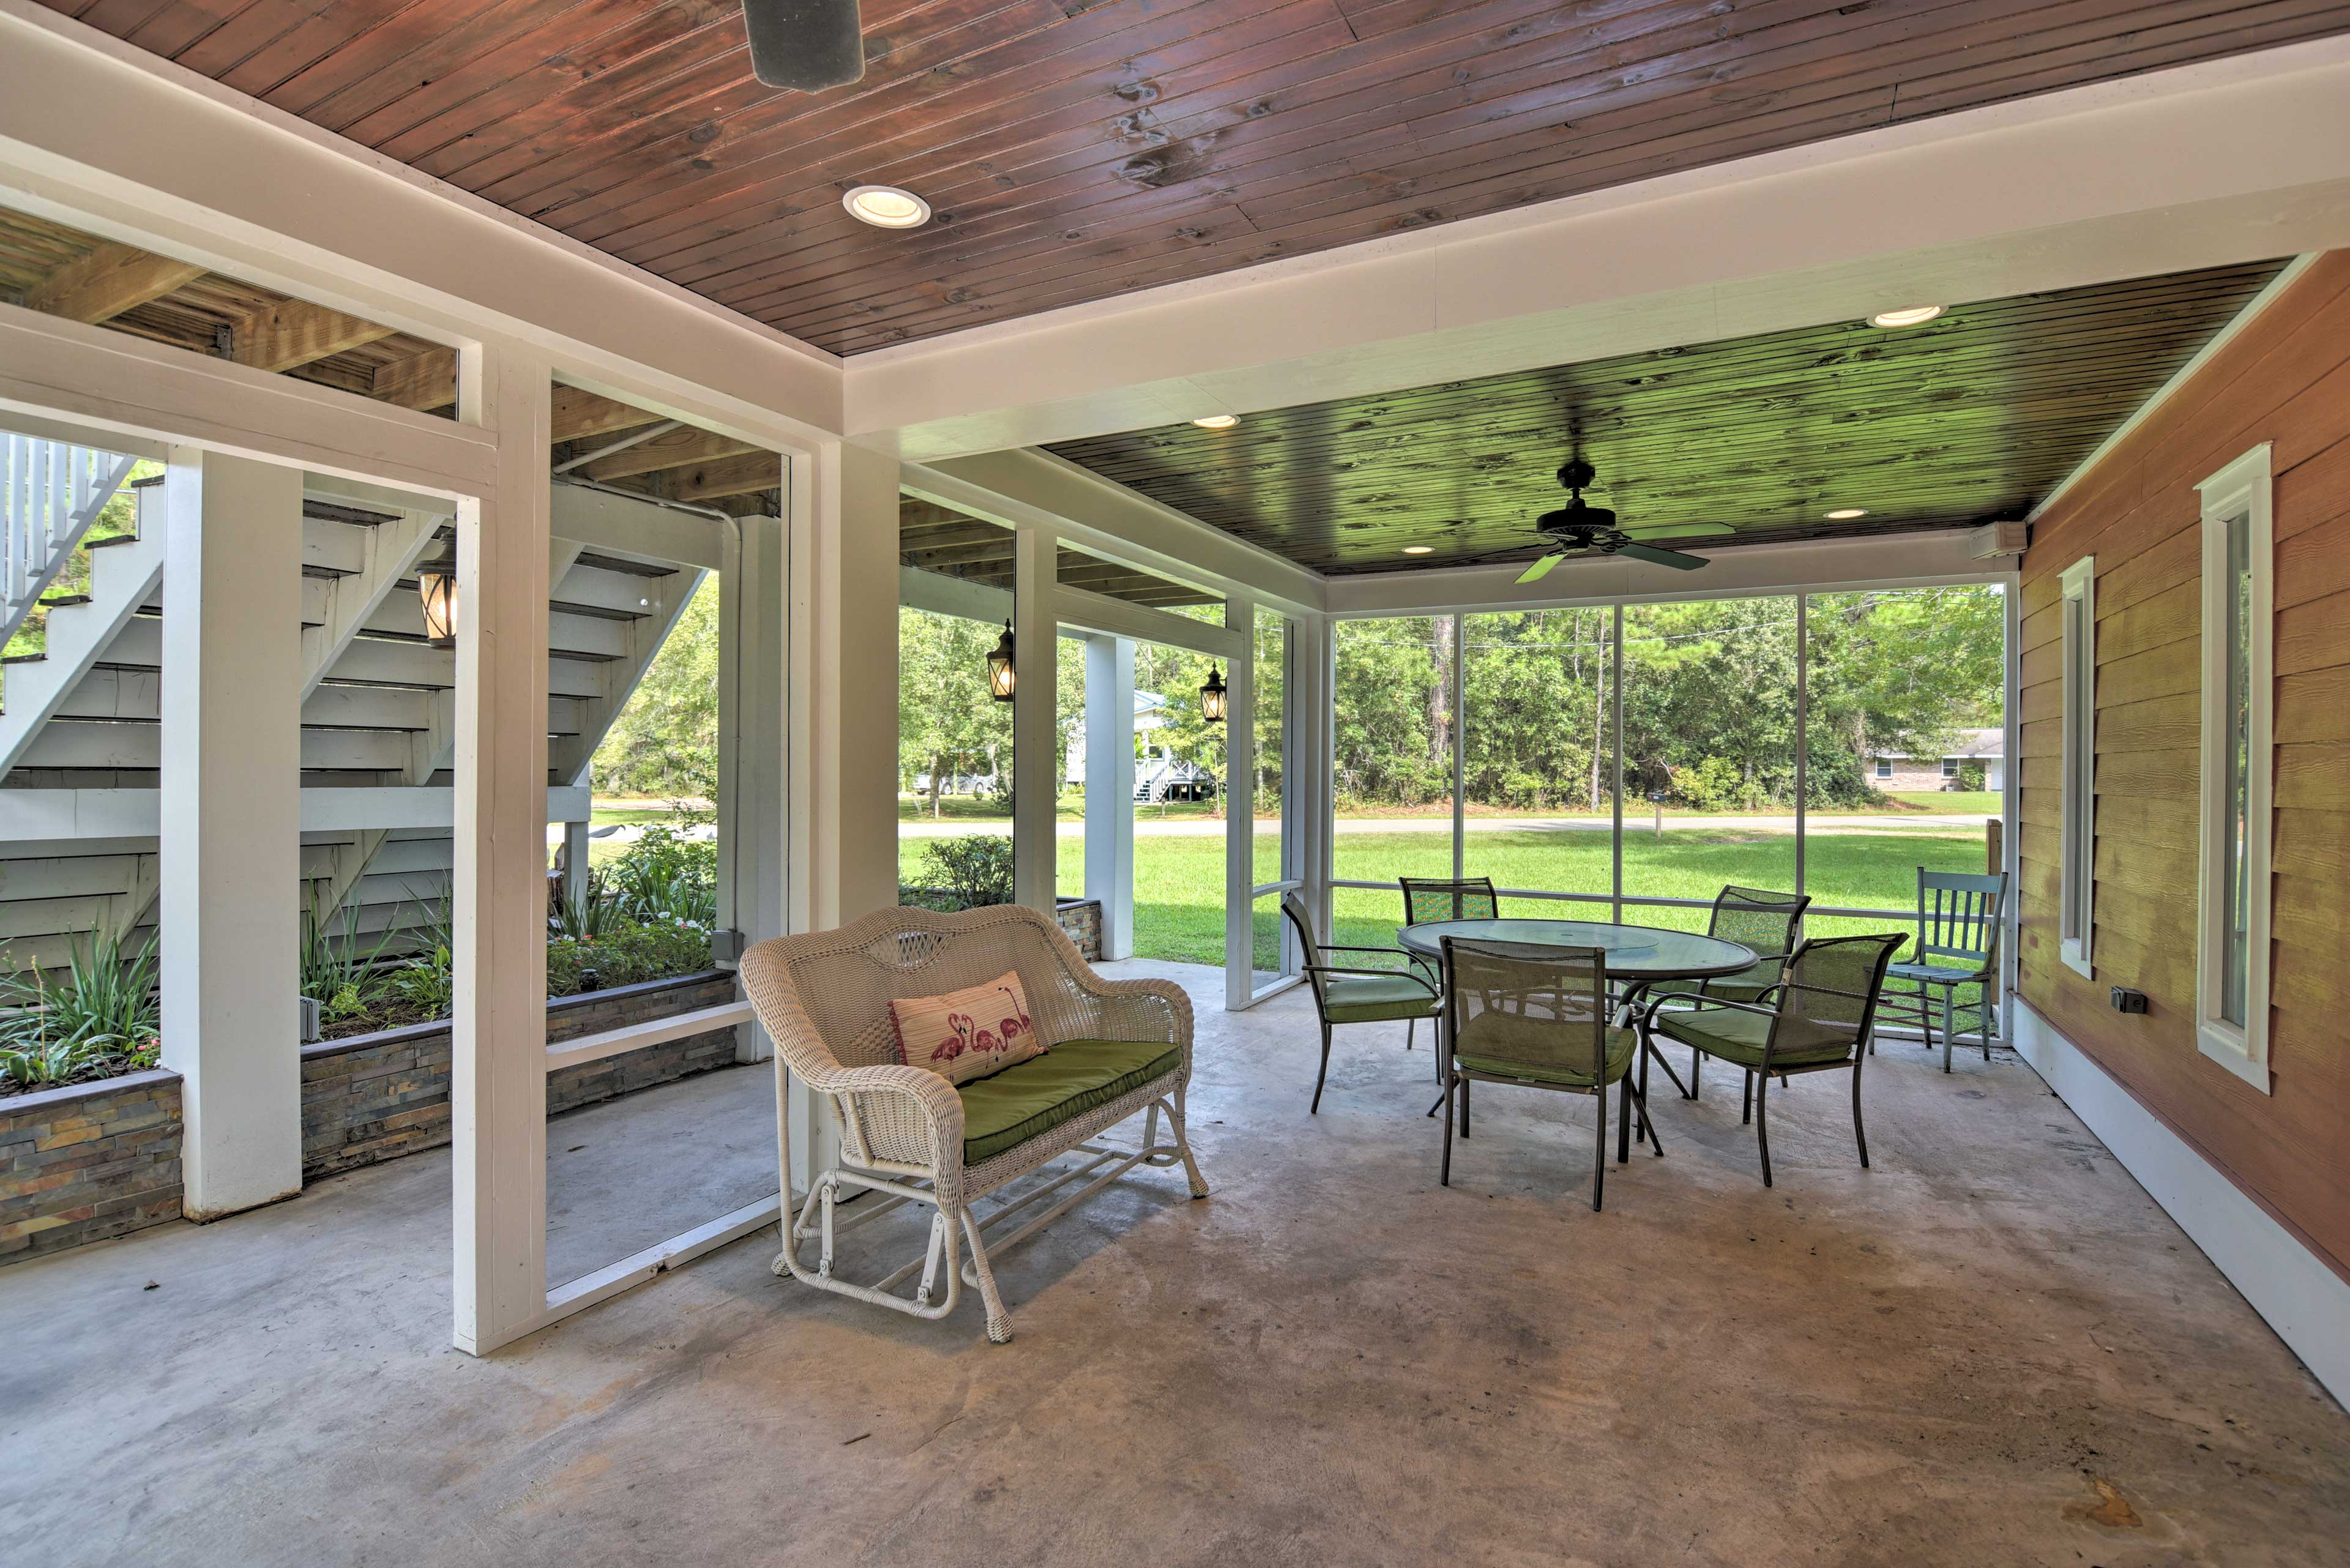 This covered front patio is now fully screened-in for bug-proofing.